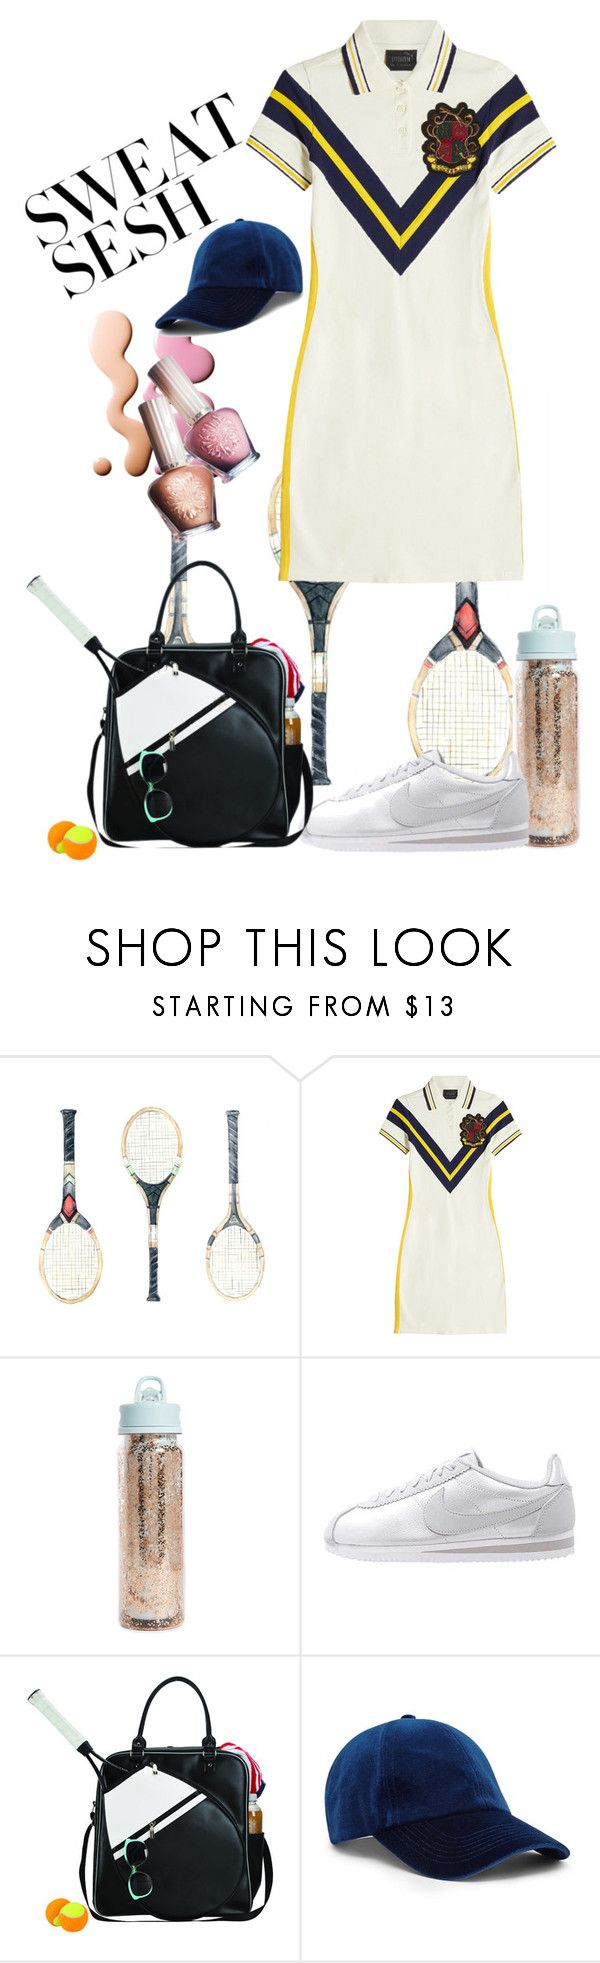 """Tennis"" by ingfreego ❤ liked on Polyvore featuring Paul & Joe, Puma, ban.do, Goodhope Bags and Forever 21"